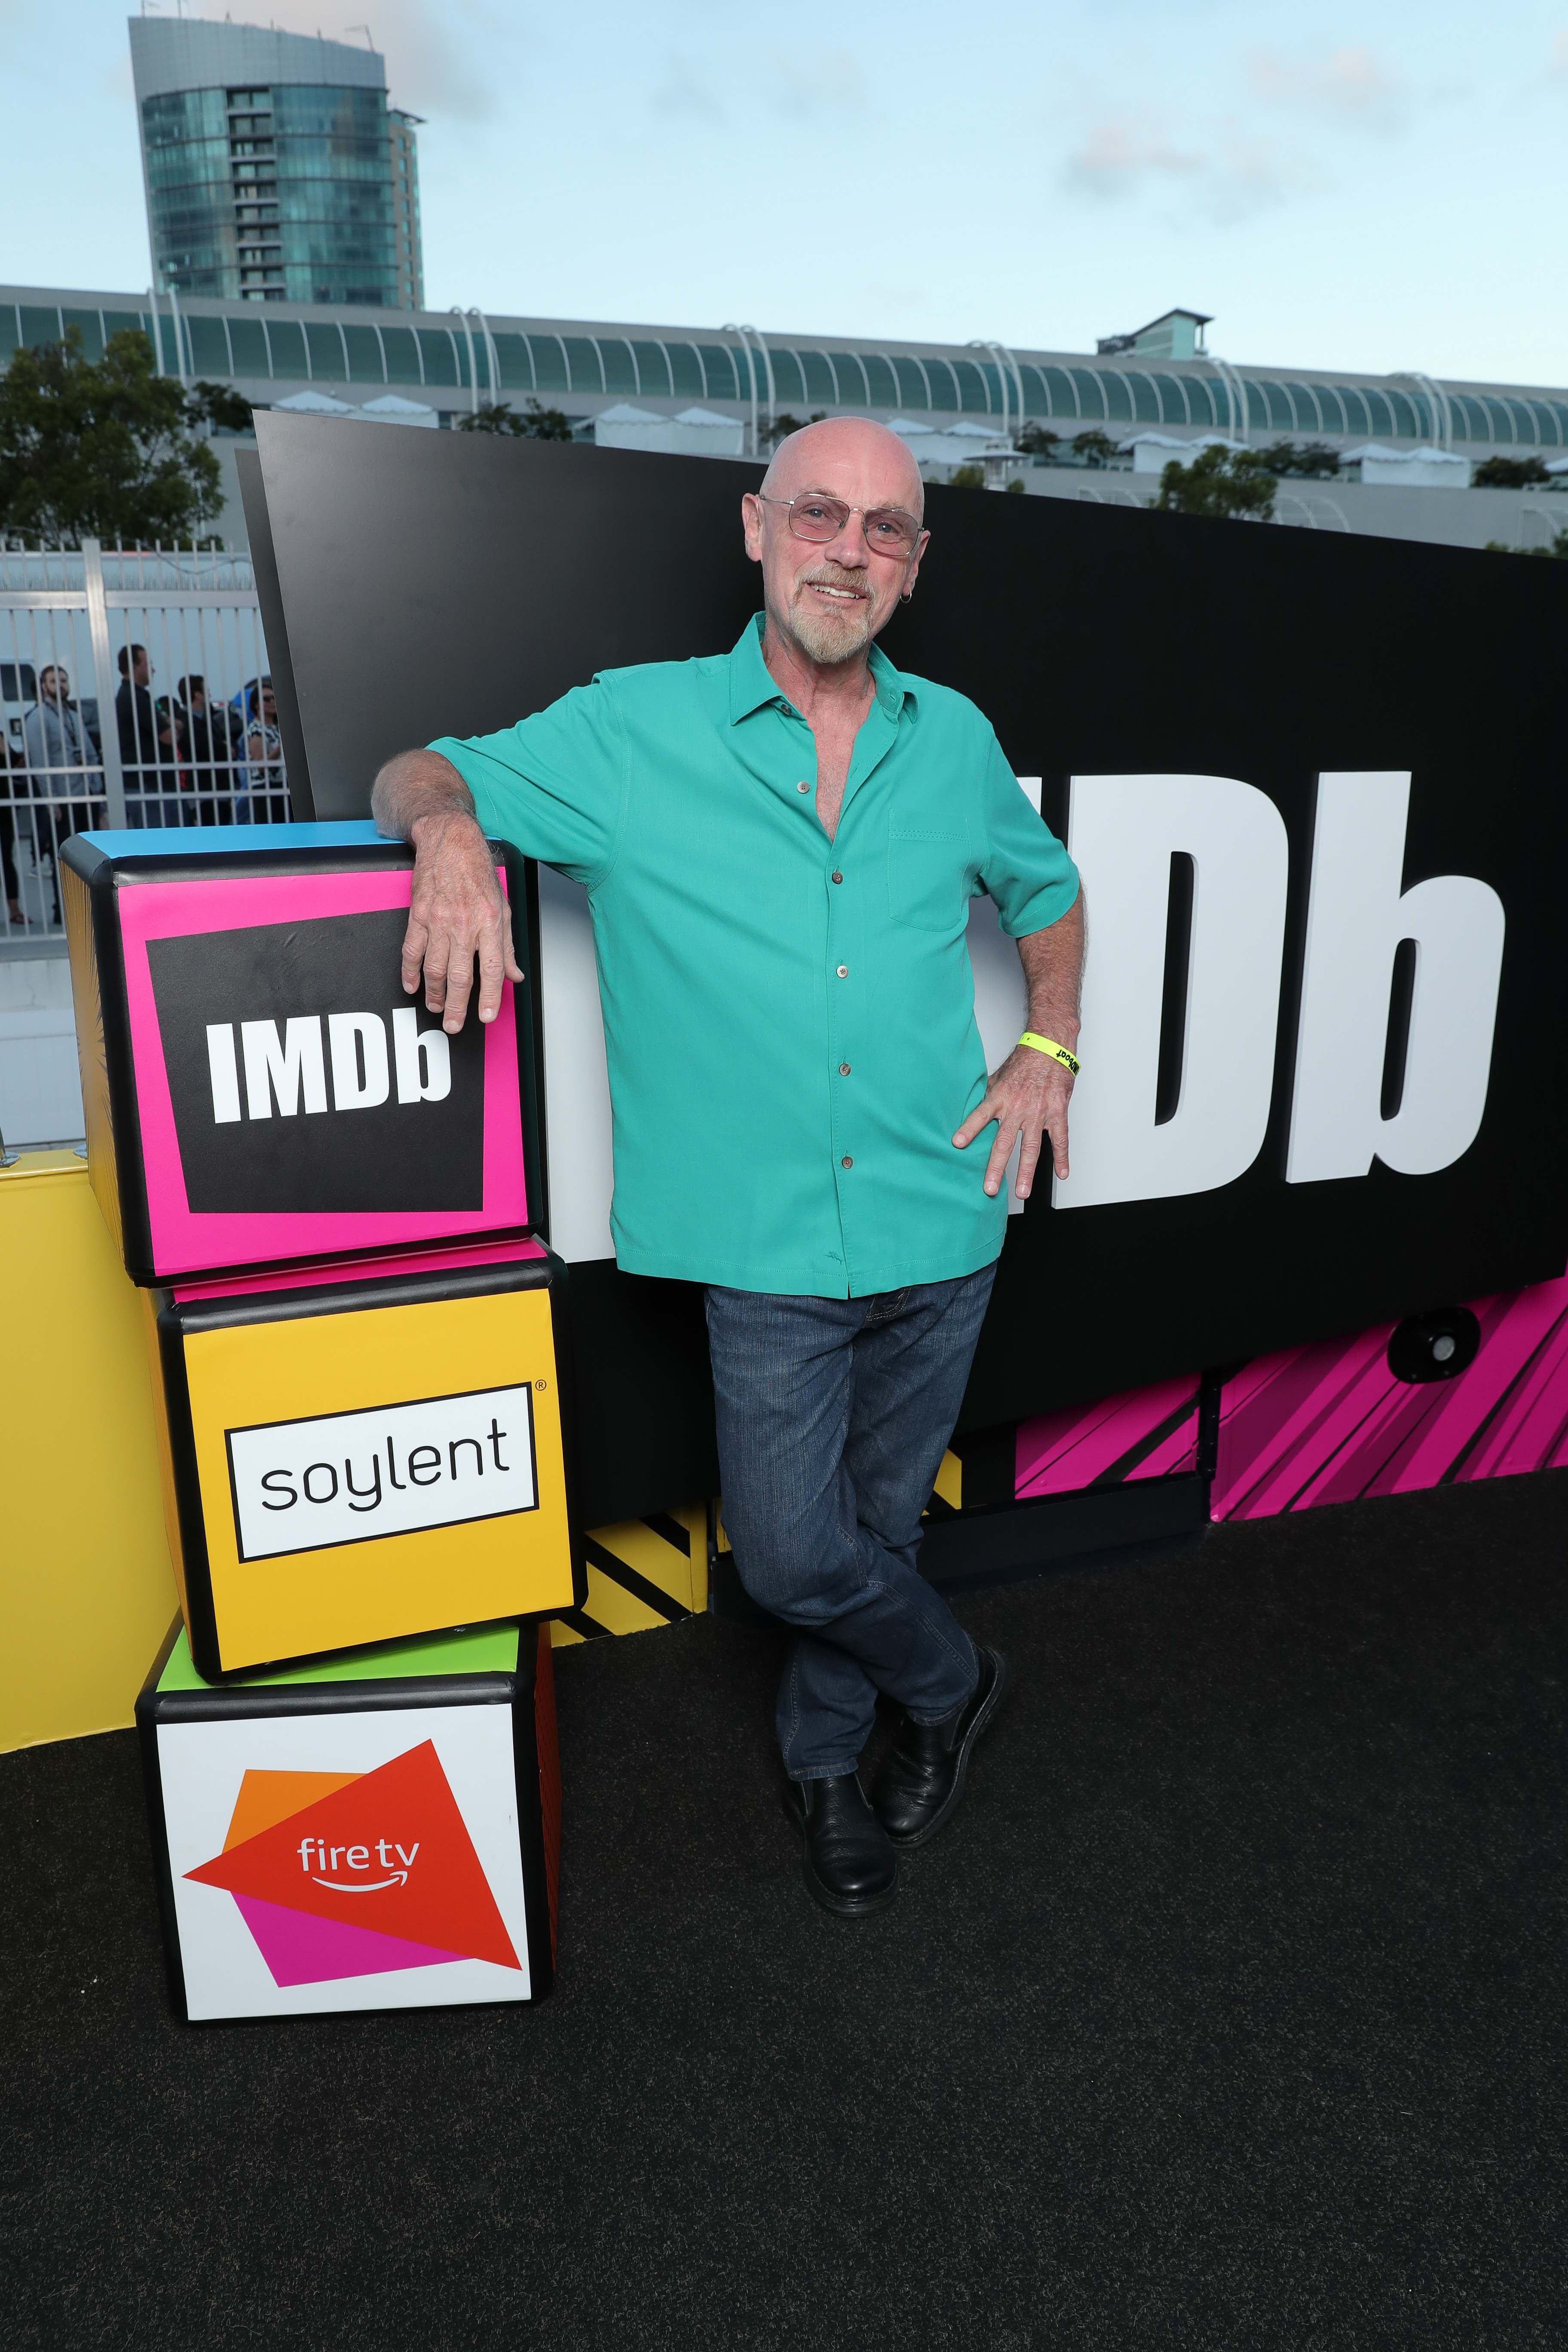 Jim Starlin at an event for IMDb at San Diego Comic-Con (2016)